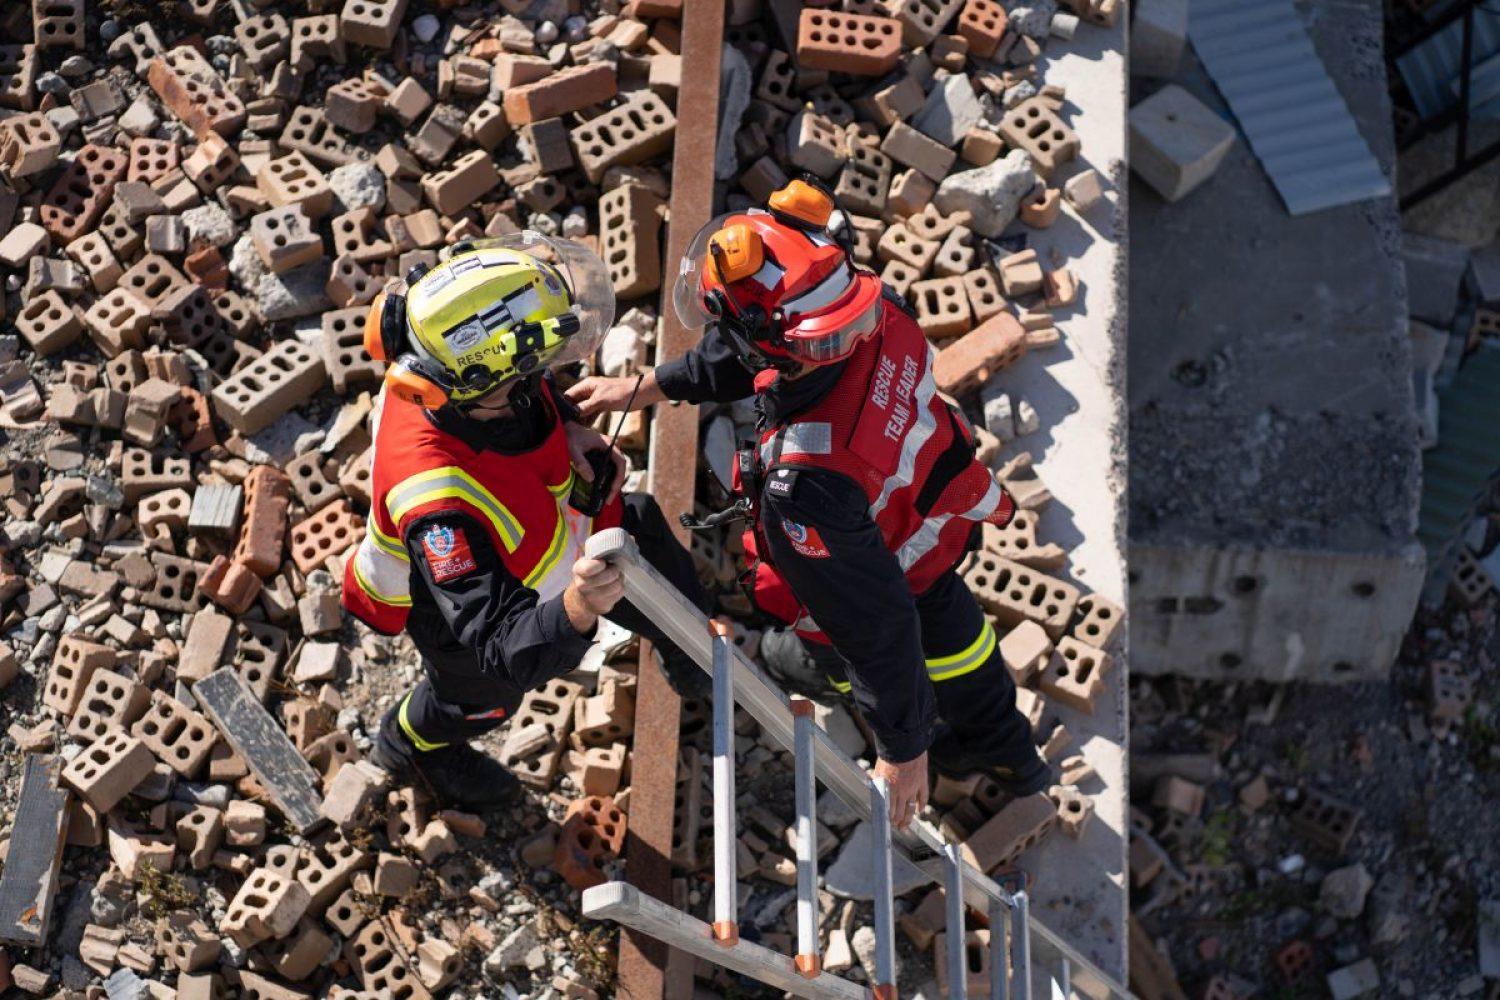 Research suggests that about 10 percent of emergency services workers develop post-traumatic stress disorder